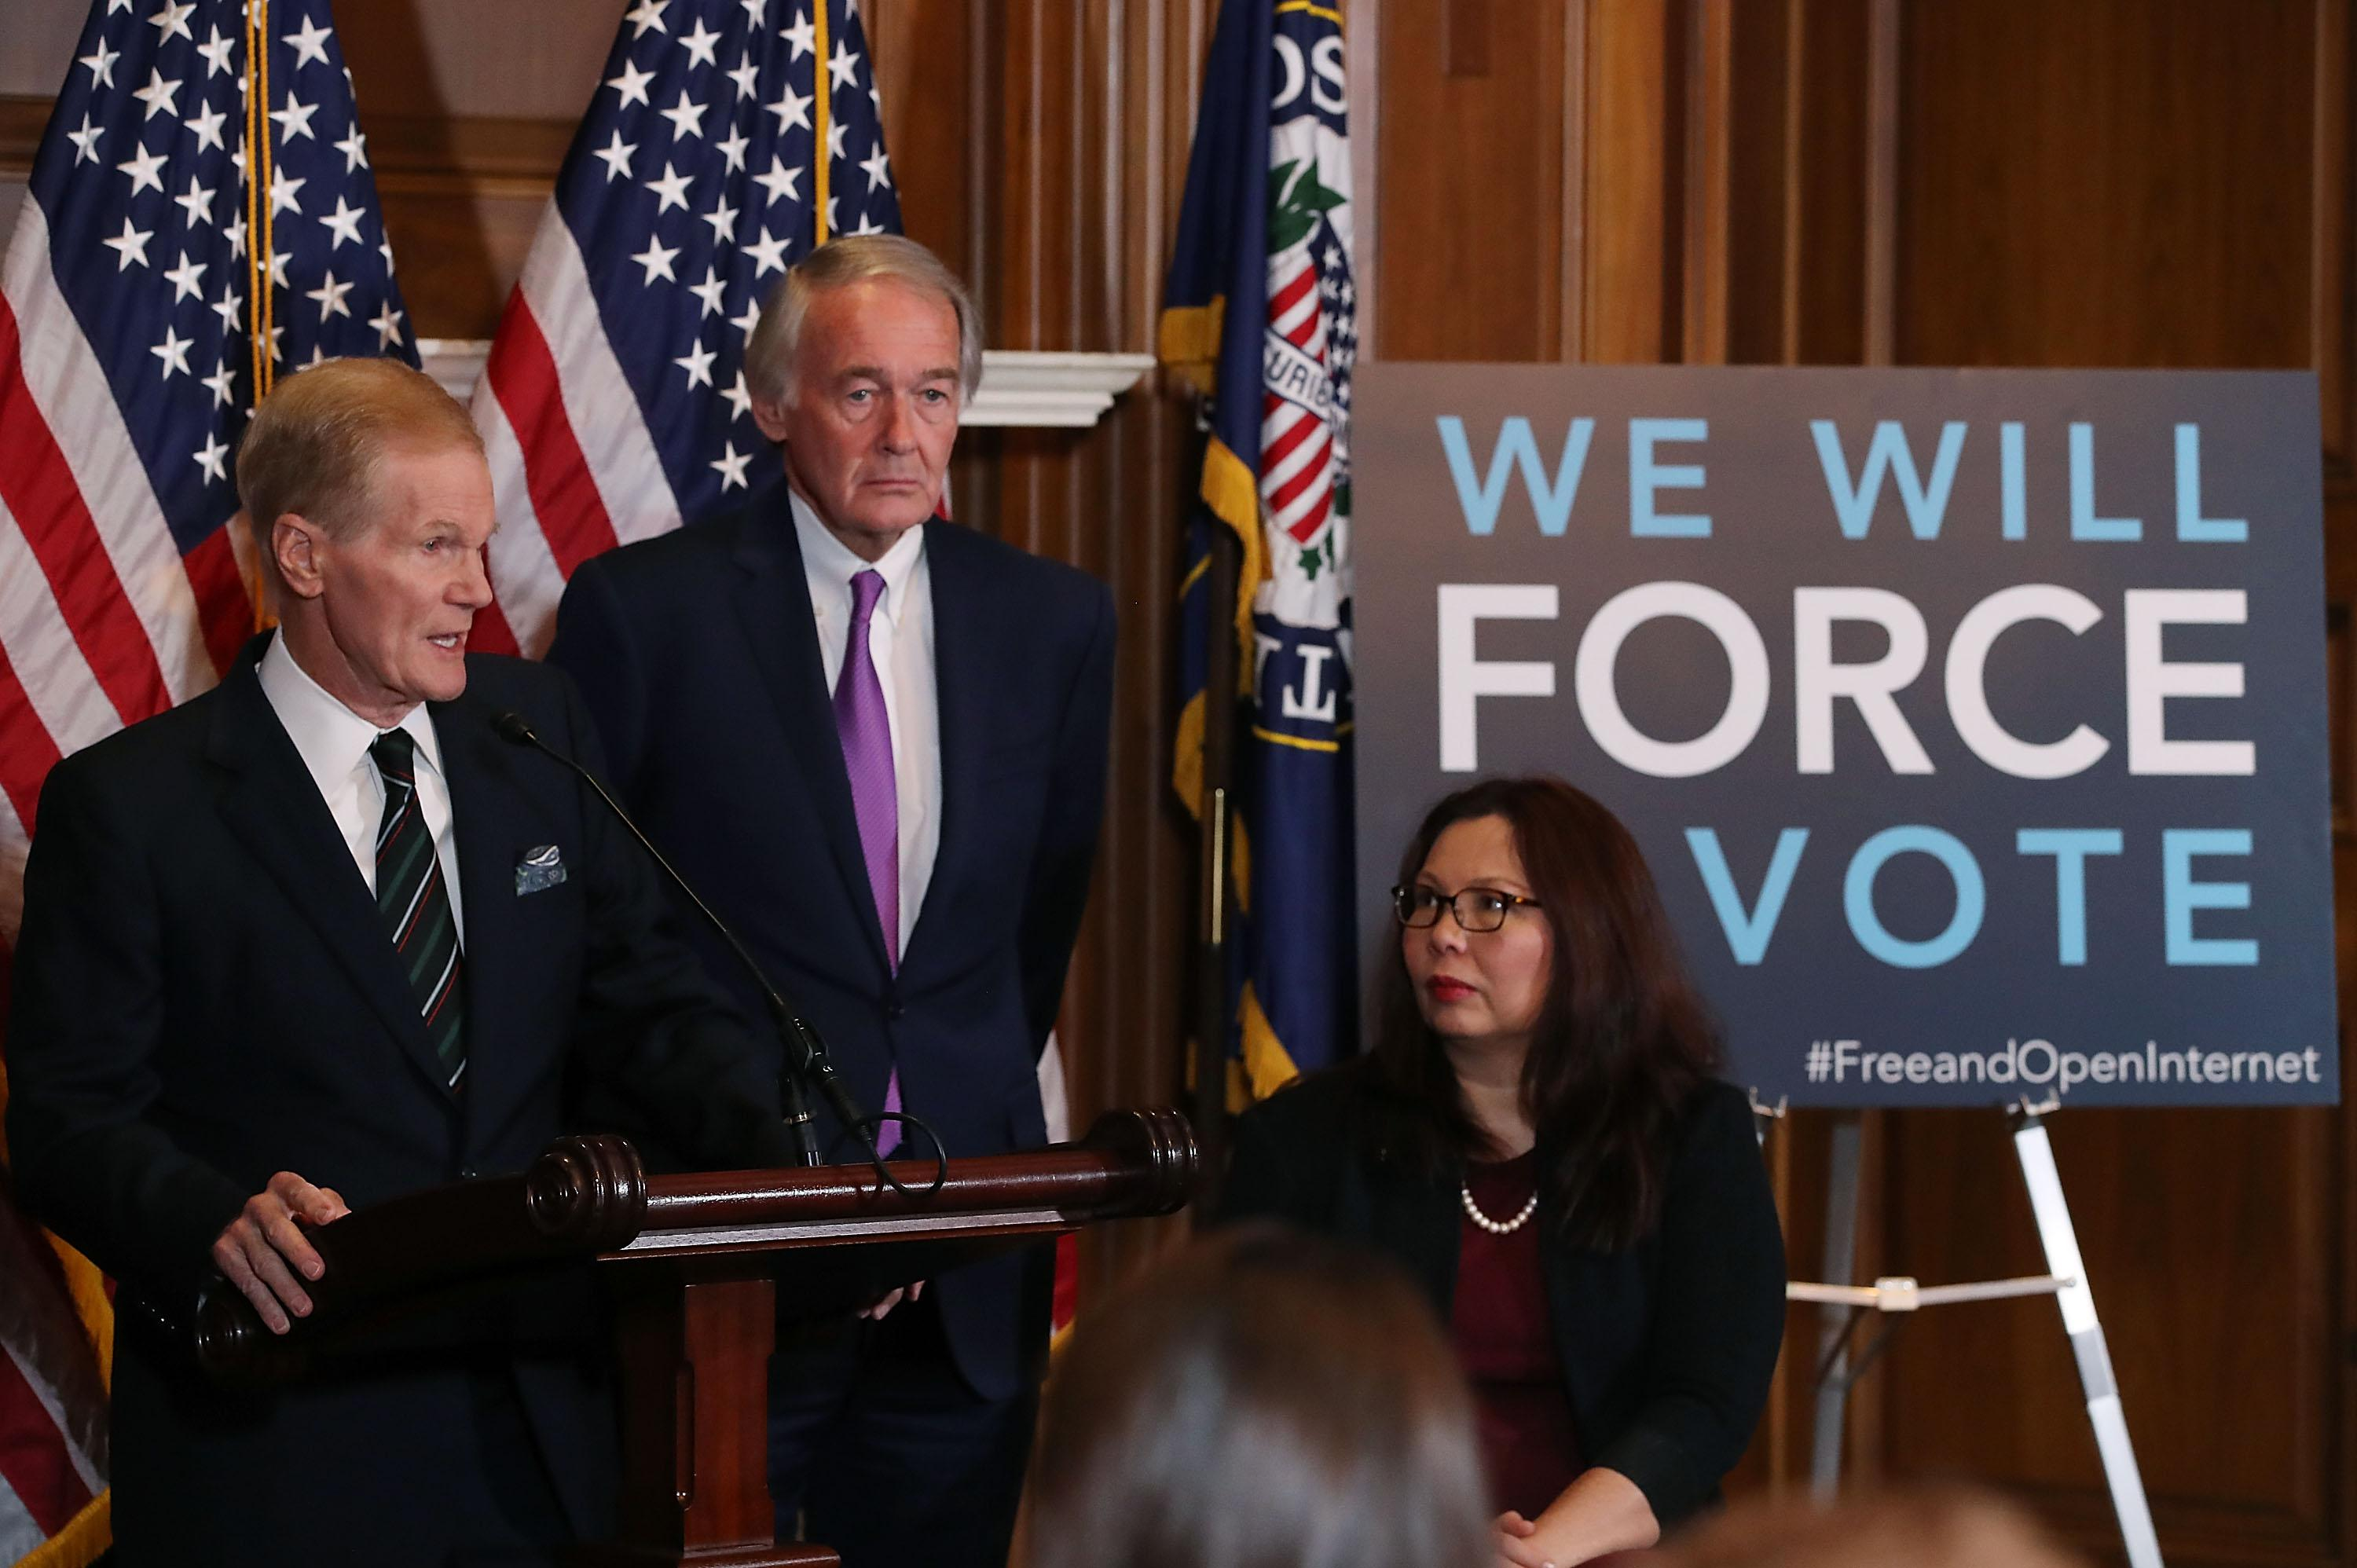 WASHINGTON, DC - JANUARY 09:  Sen. Bill Nelson (D-FL) (L) is flanked by Ed Markey (D-MA) and  Tammy Duckworth (D-IL)while speaking about a Congressional Review Act (CRA) resolution that would undo action by the FCC and restore the 2015 net neutrality rules, on Capitol Hill January 9, 2018 in Washington, DC.  (Photo by Mark Wilson/Getty Images)